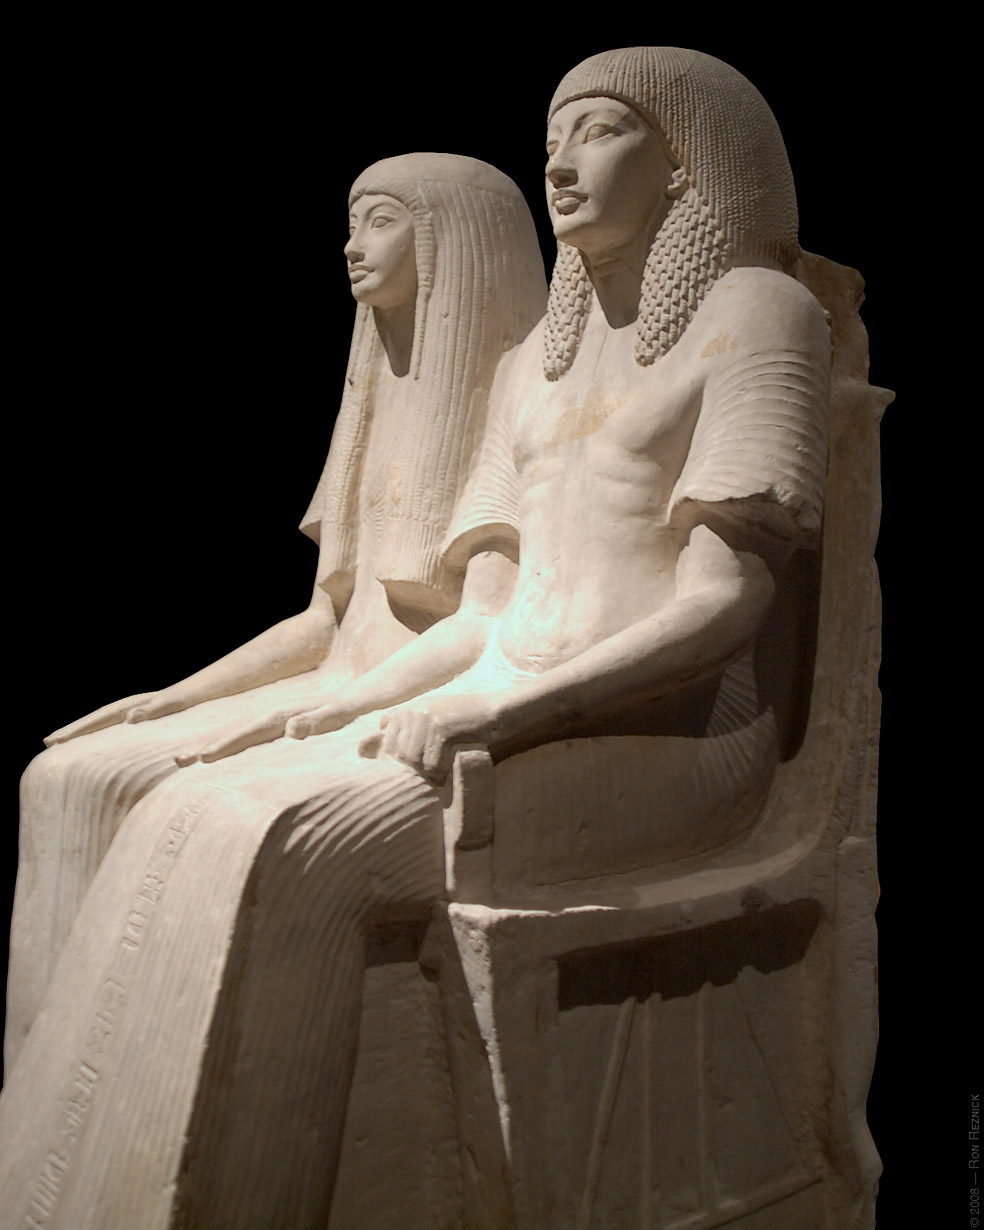 akhenaten and nefertiti history Akhenaten is one of the most famous pharaohs of ancient egypt, despite the attempts of later rulers to omit him from the lists of kings.